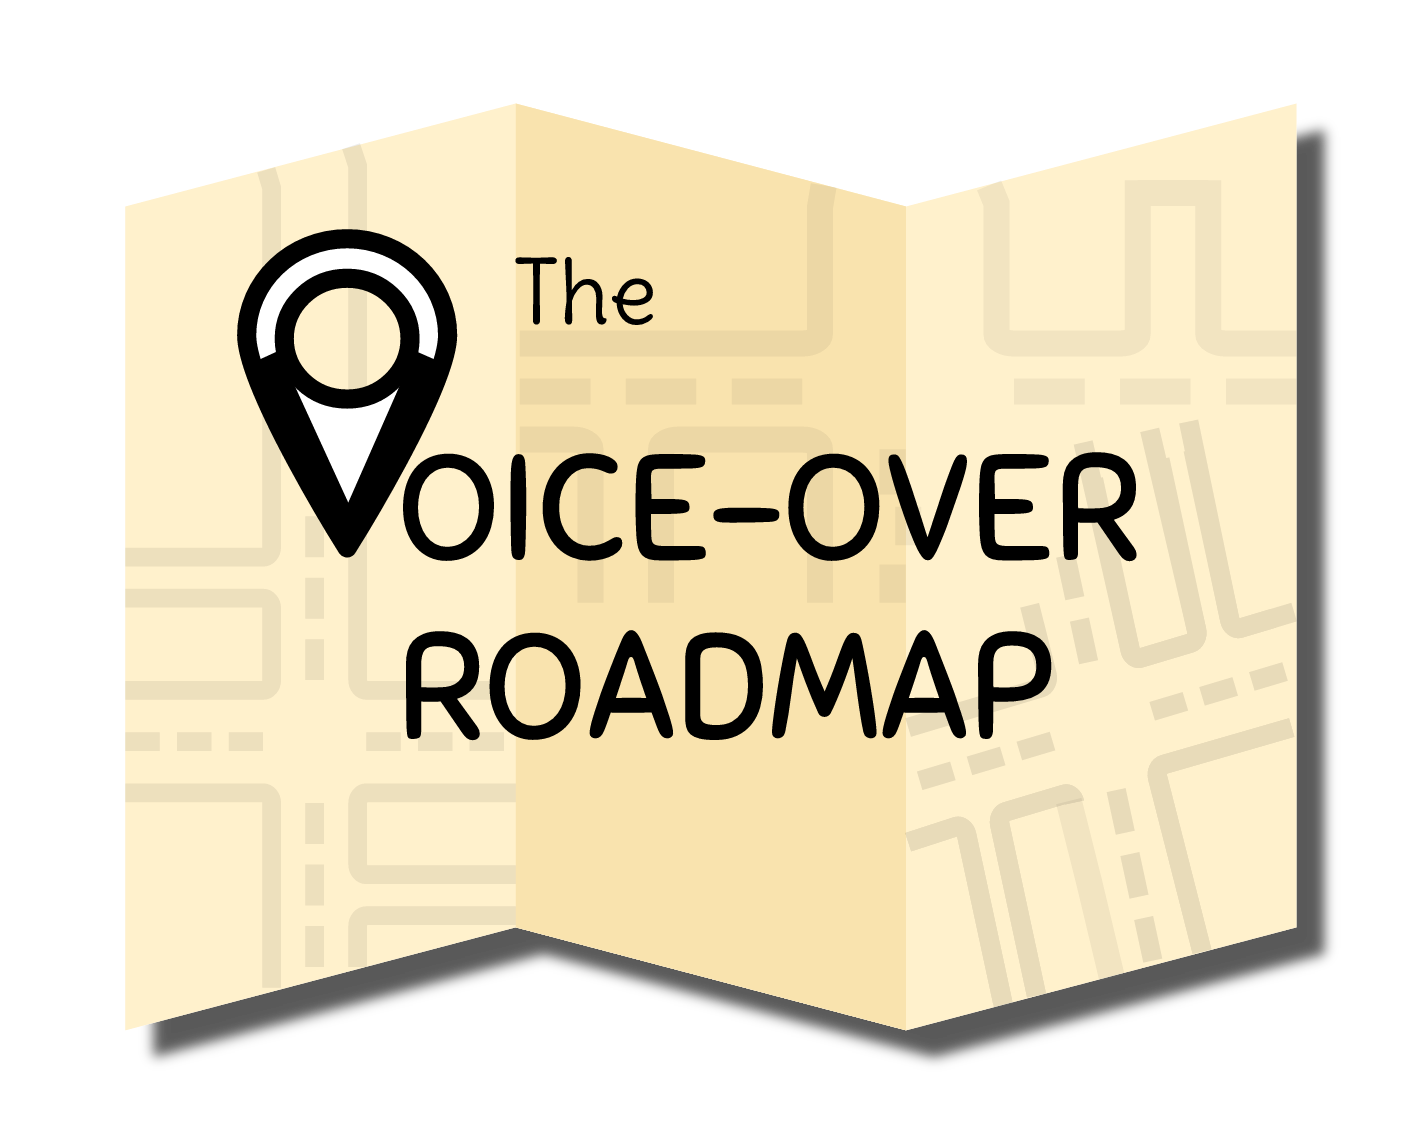 The Voice-Over Roadmap